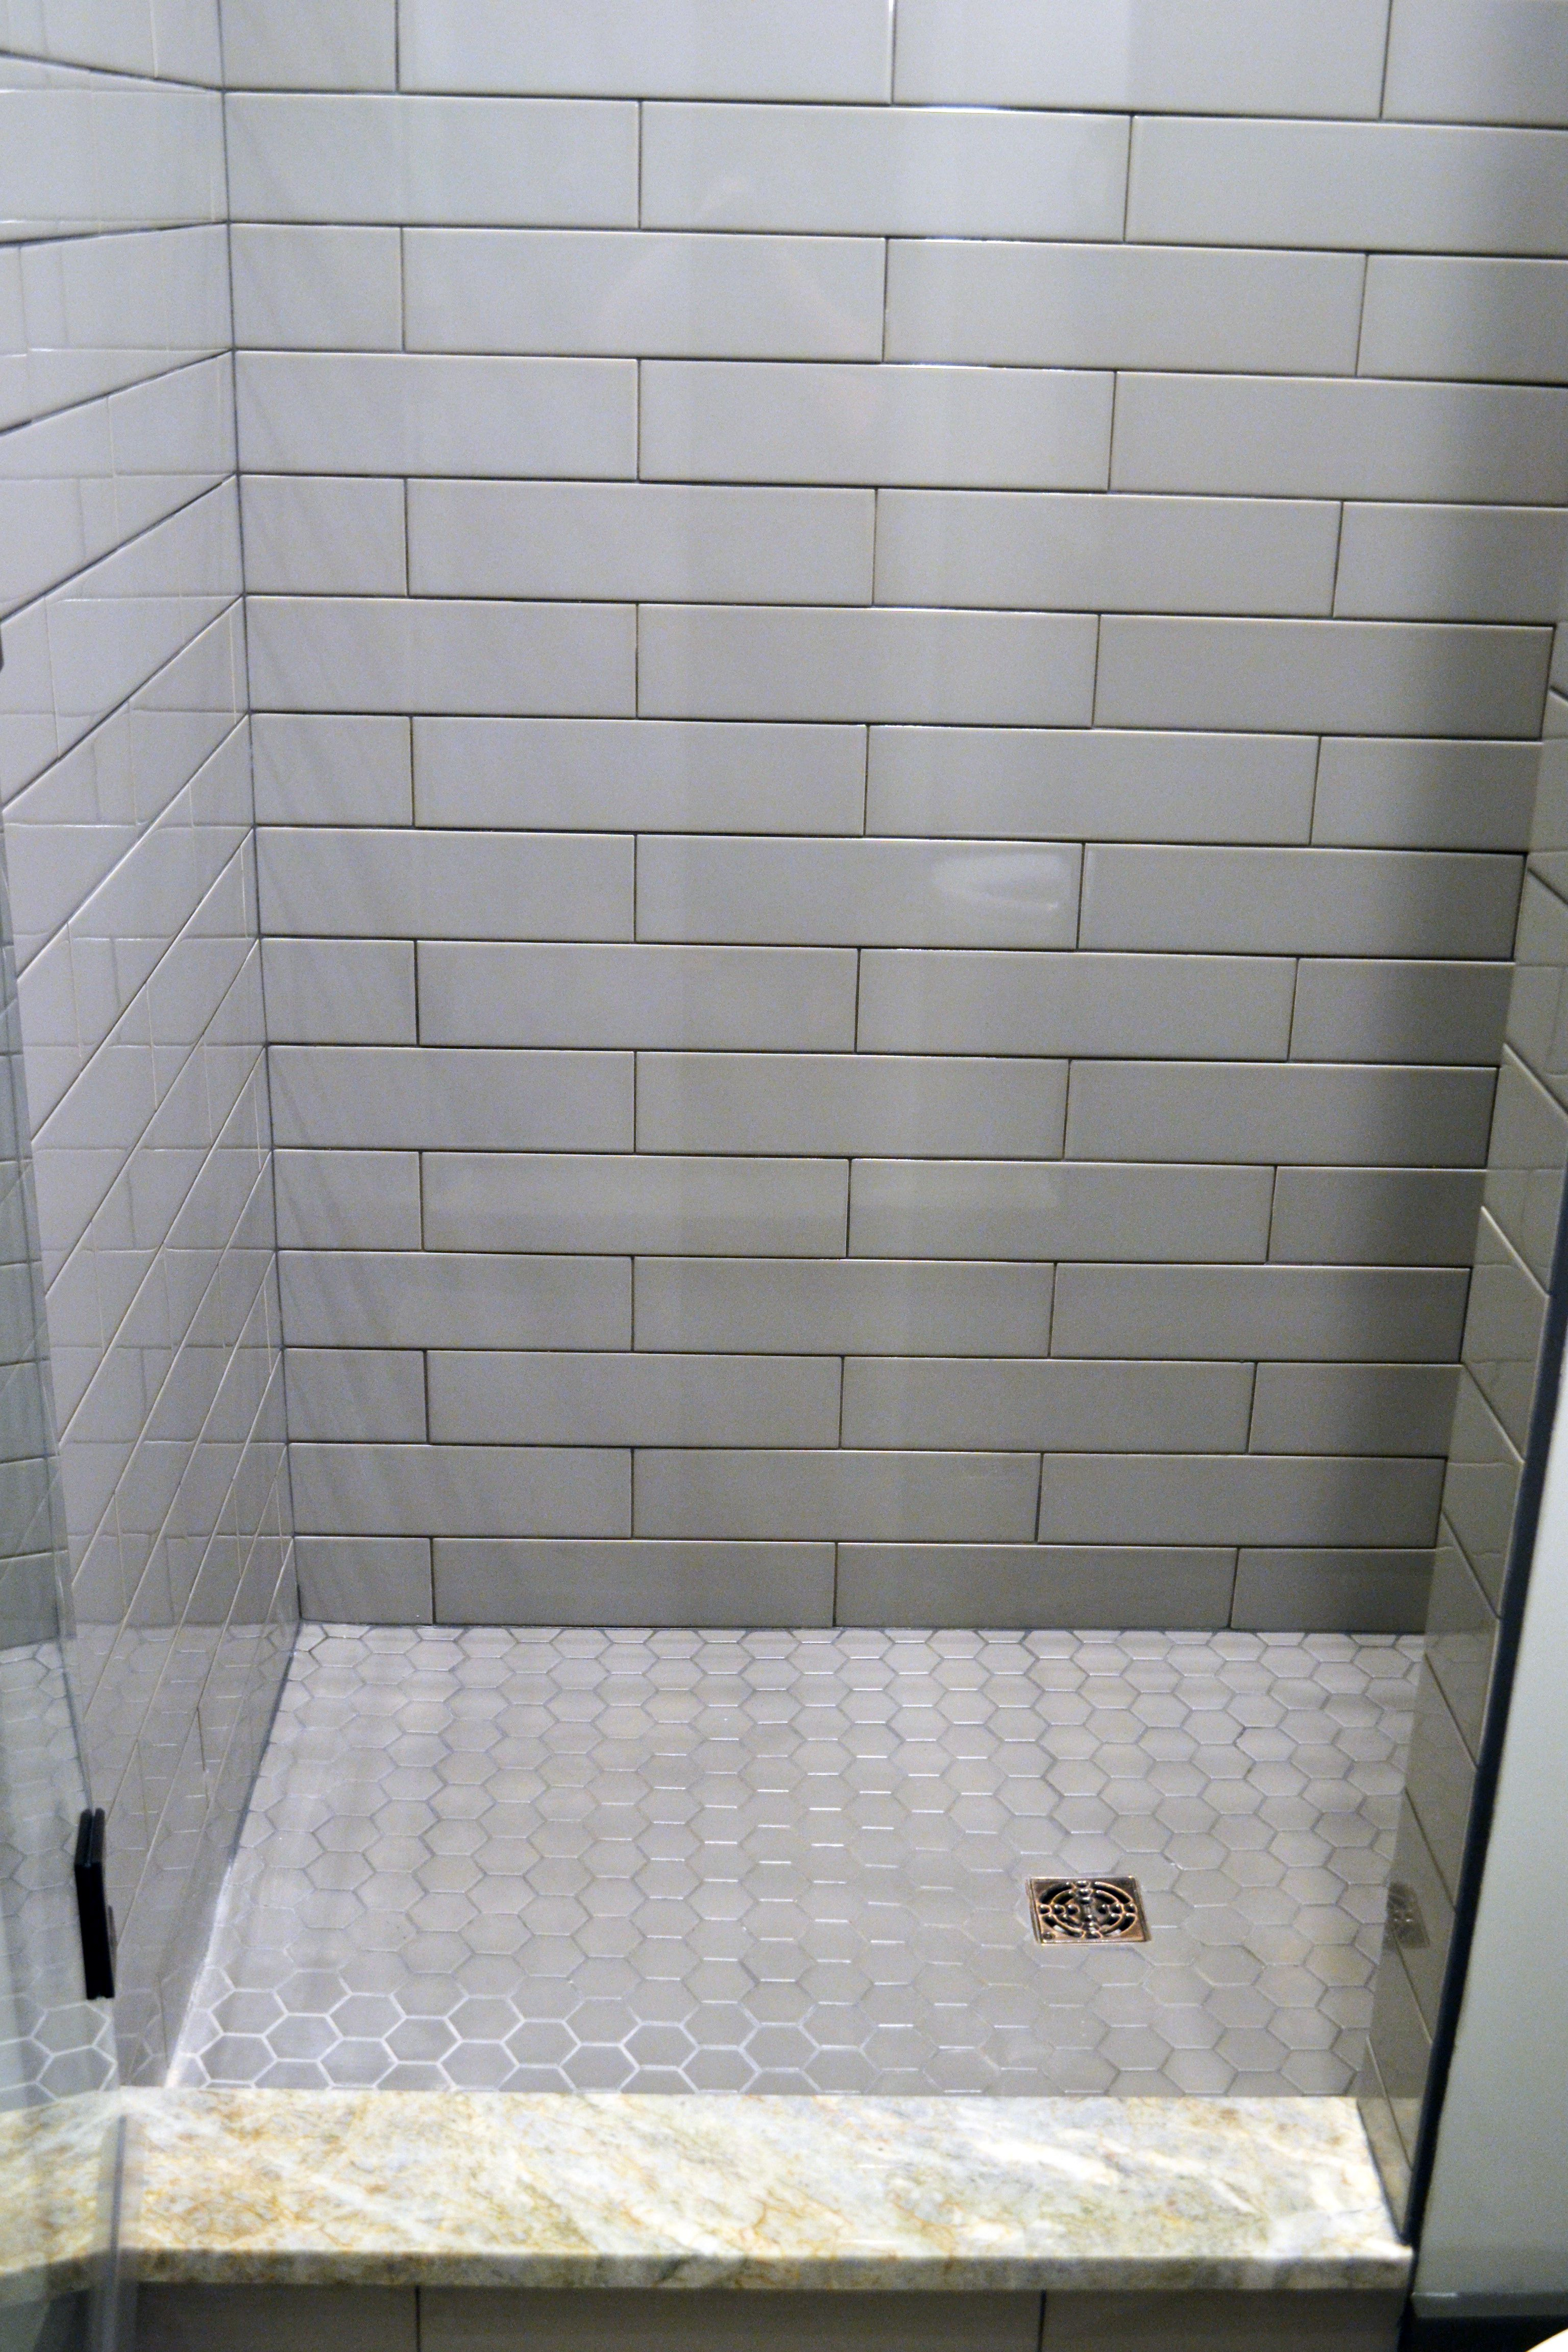 Shower Tile Parade Of Homes Bowling Green Kentucky Tile Trends